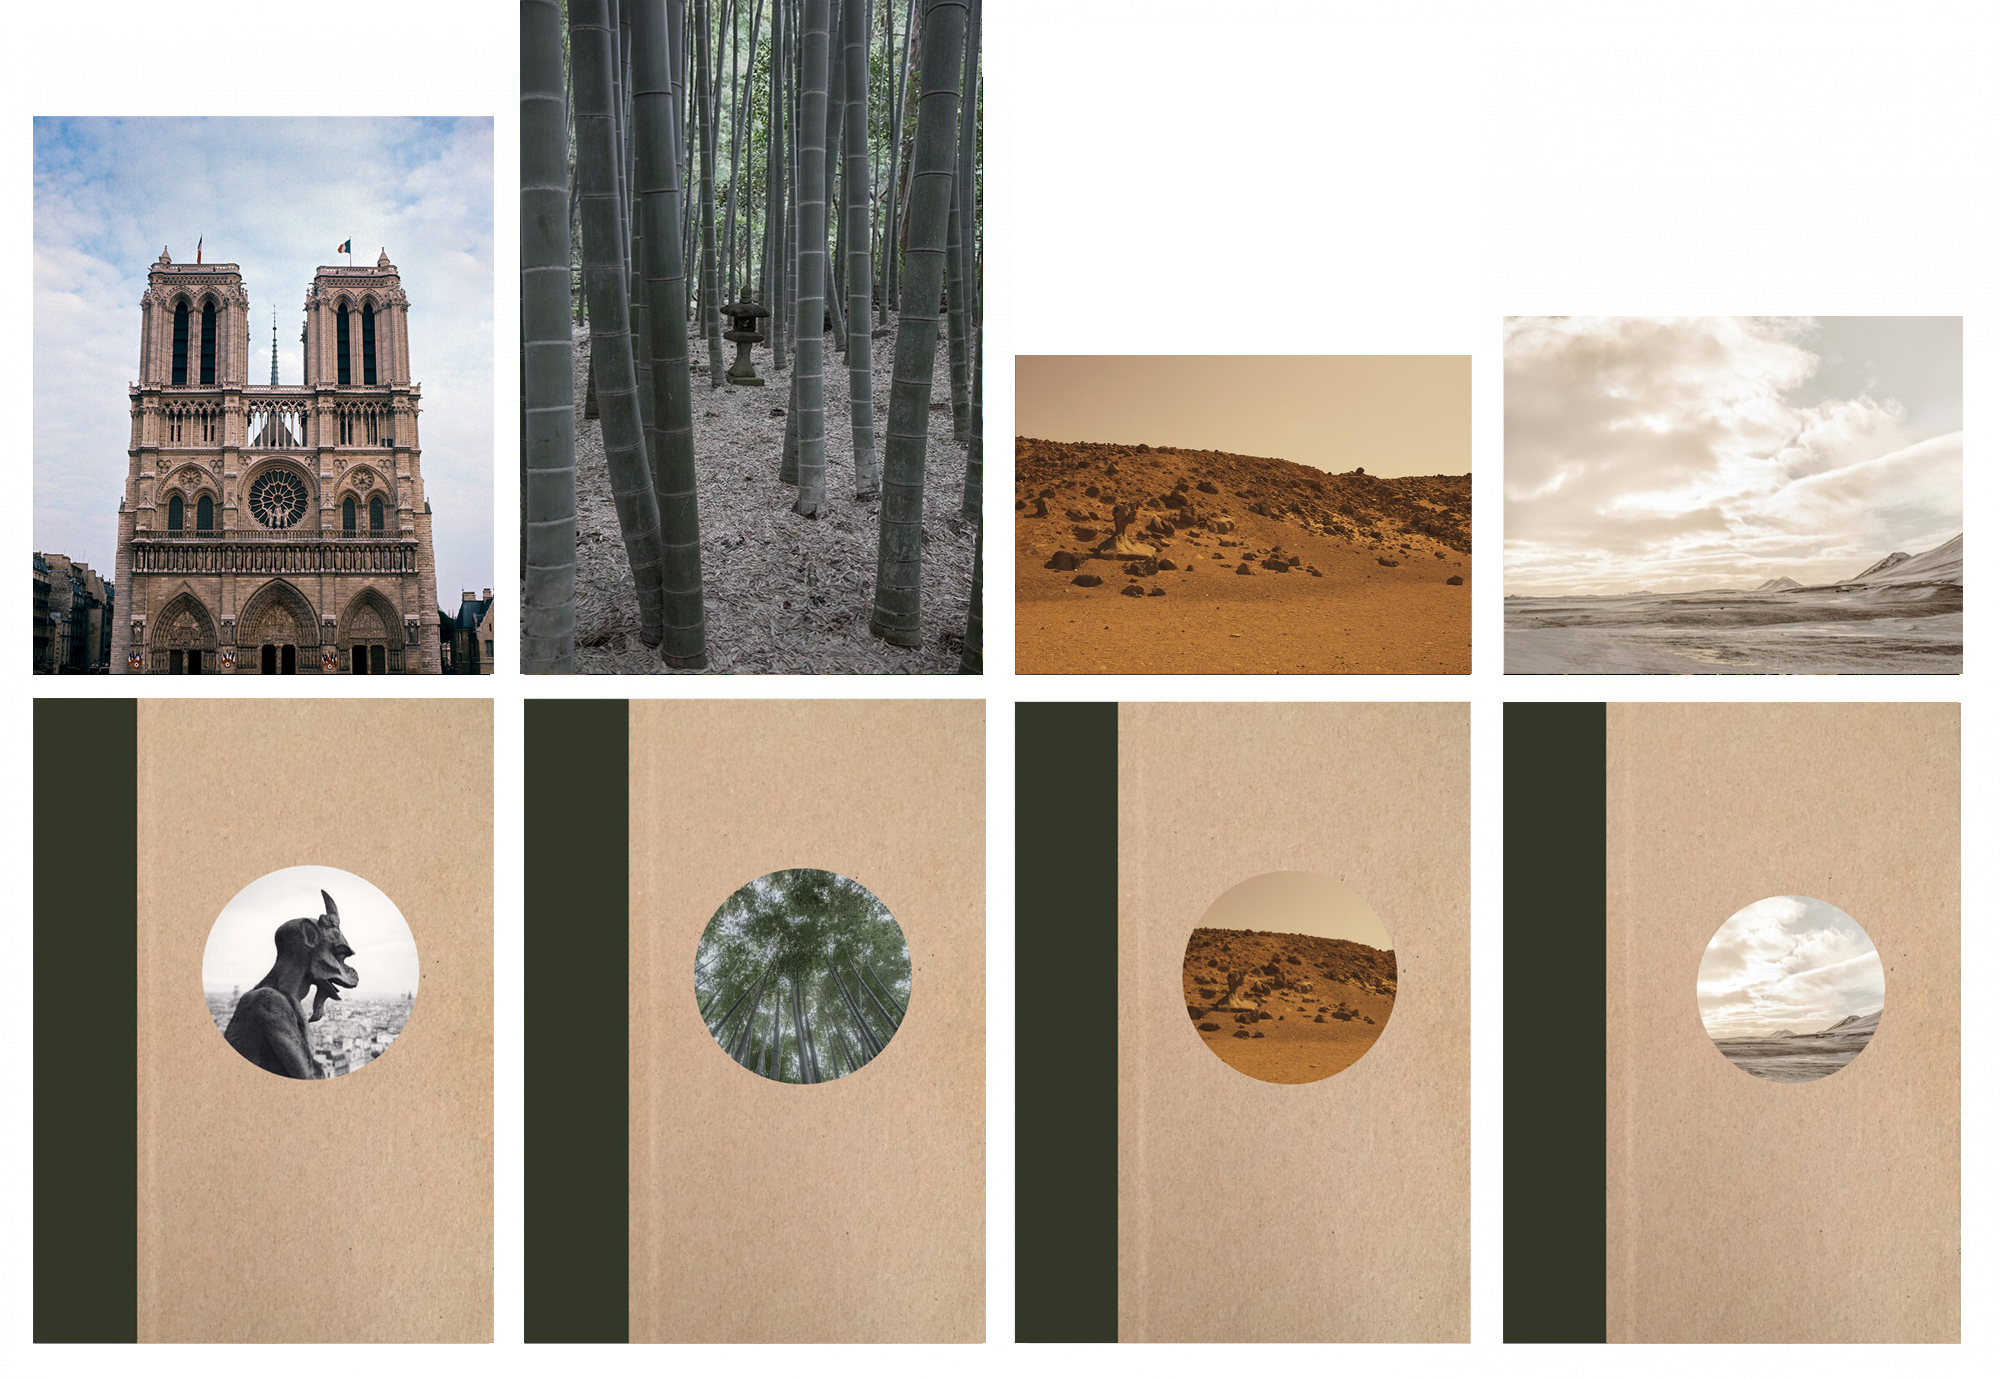 Nazraeli Press One Picture Book Two Series, Set 5: #17-20, Limited Edition(s) (with 4 Prints): Michael Kenna: Notre-Dame de Paris; David Gibson: Bamboo Grove; Alia Malley: Captains of the Dead Sea; Todd Hido: Untitled #11856-0820